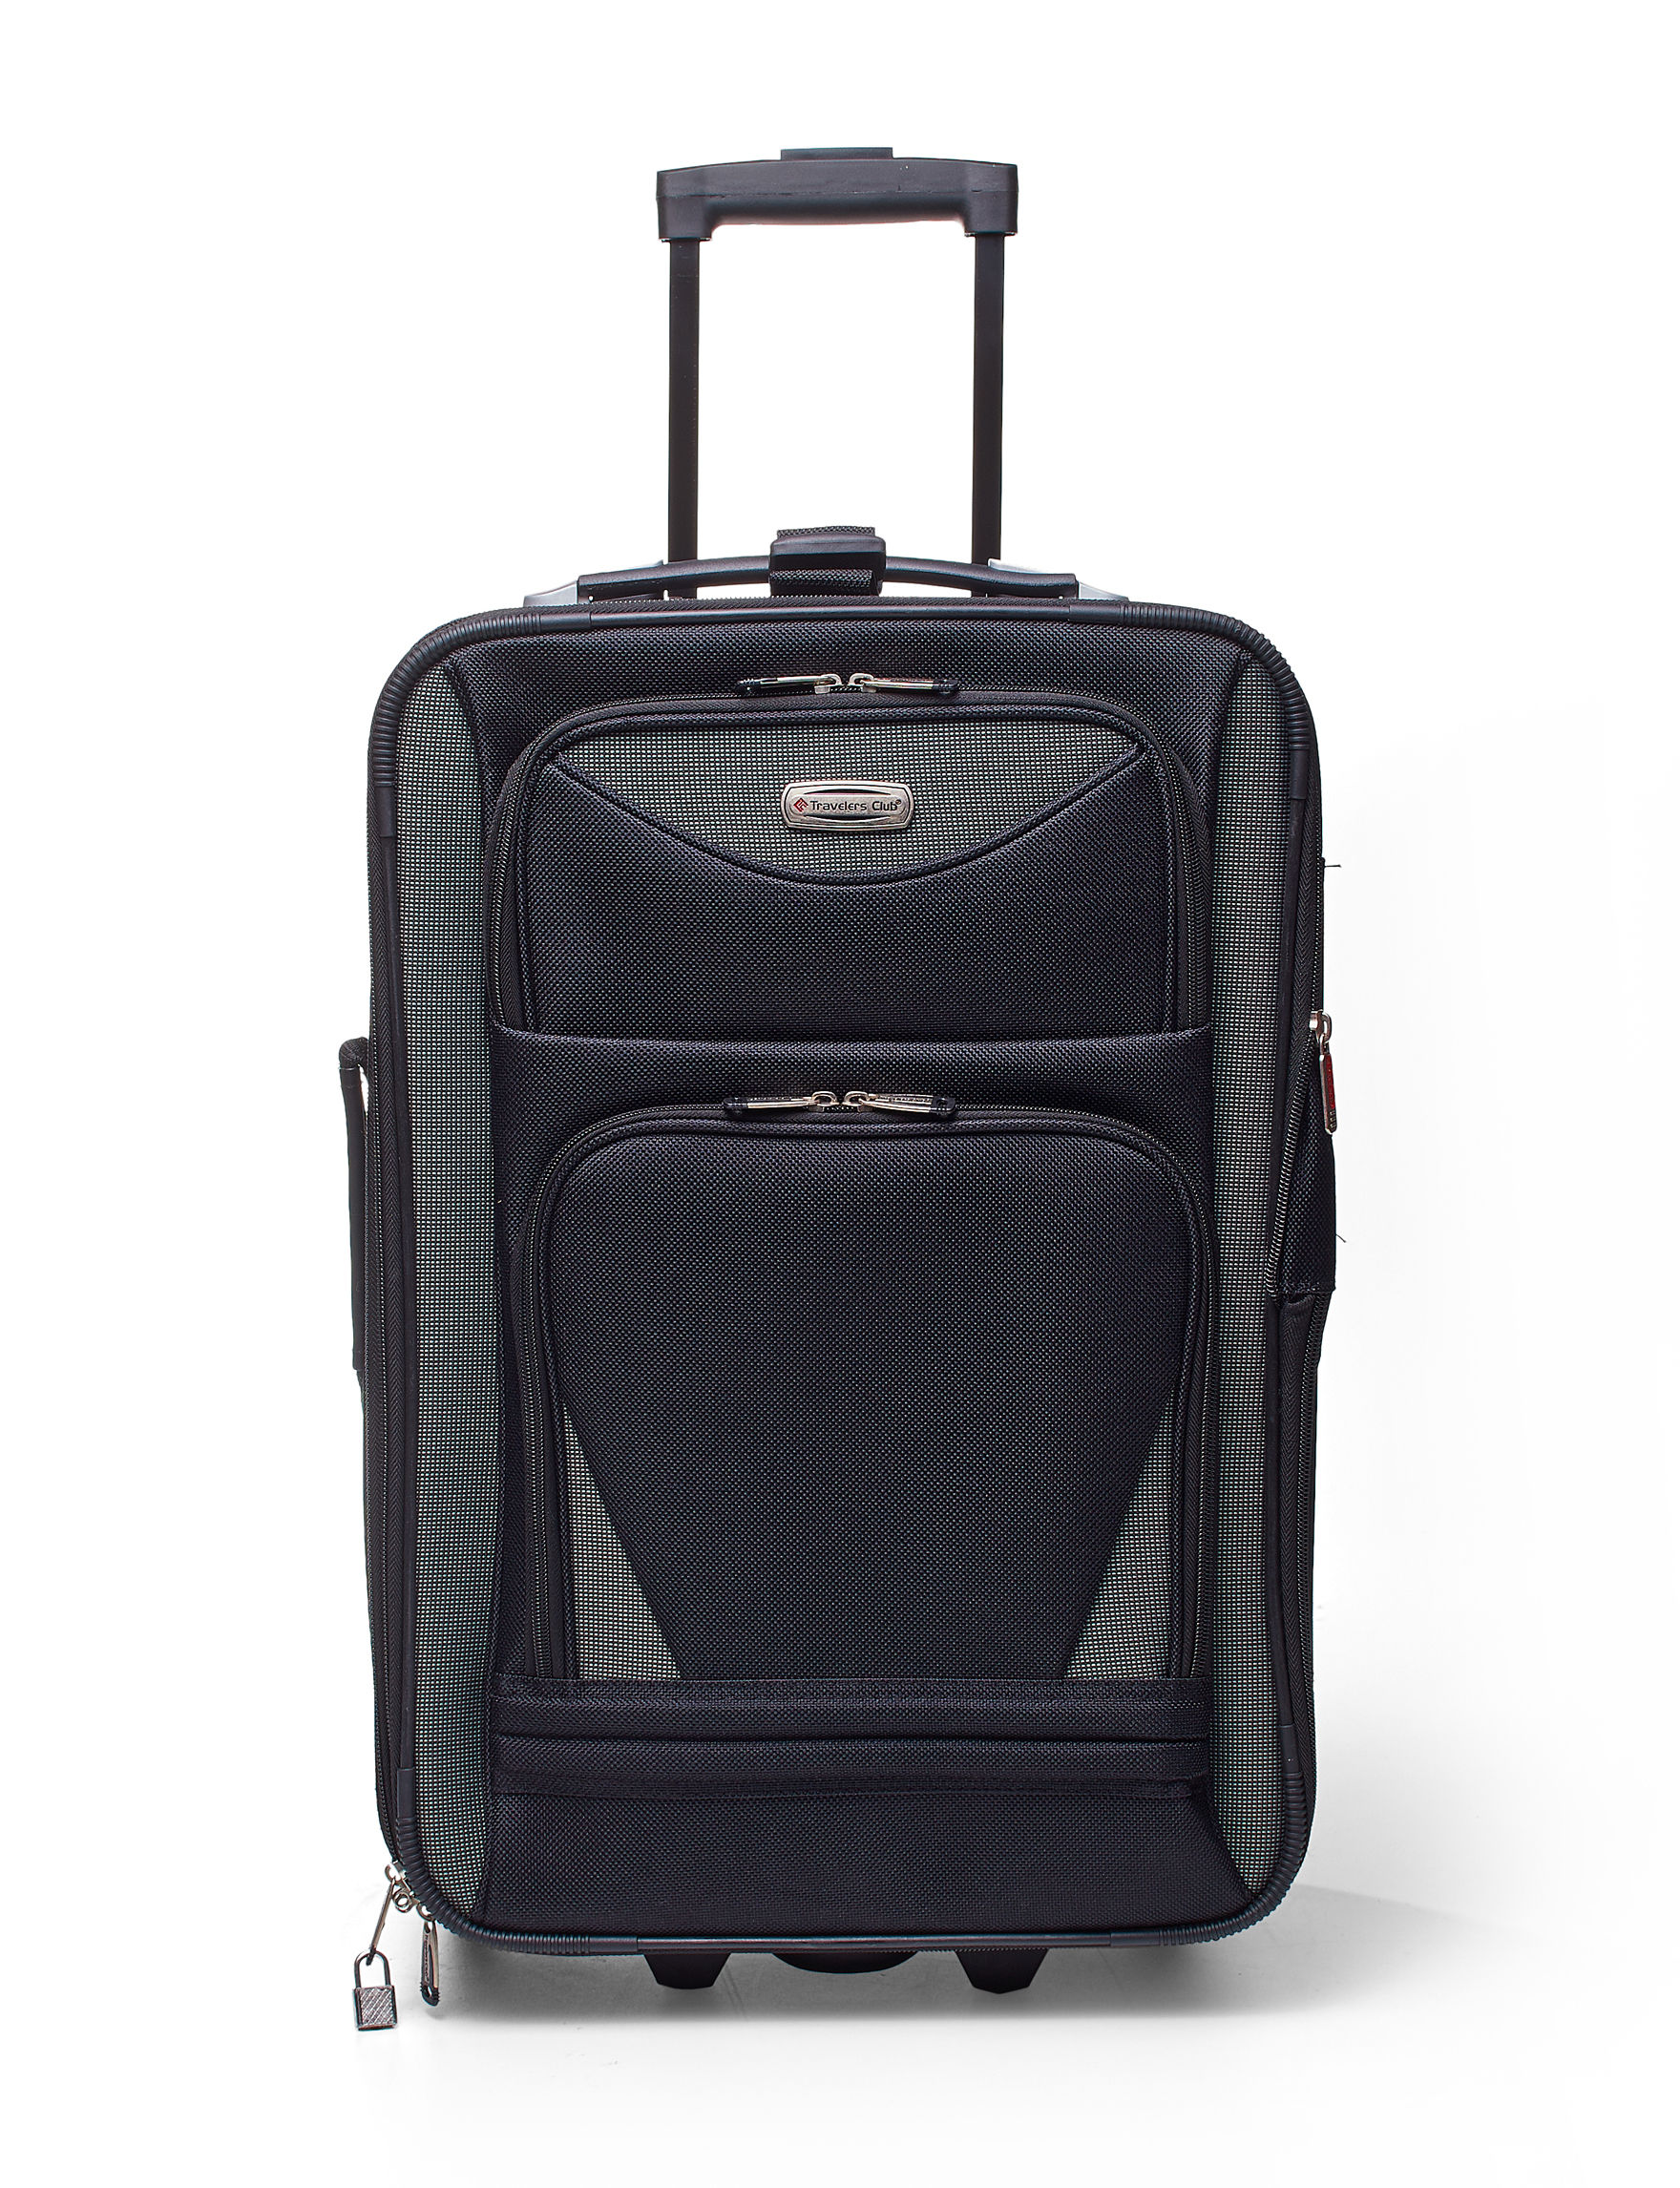 Travelers Club Luggage Black Upright Spinners